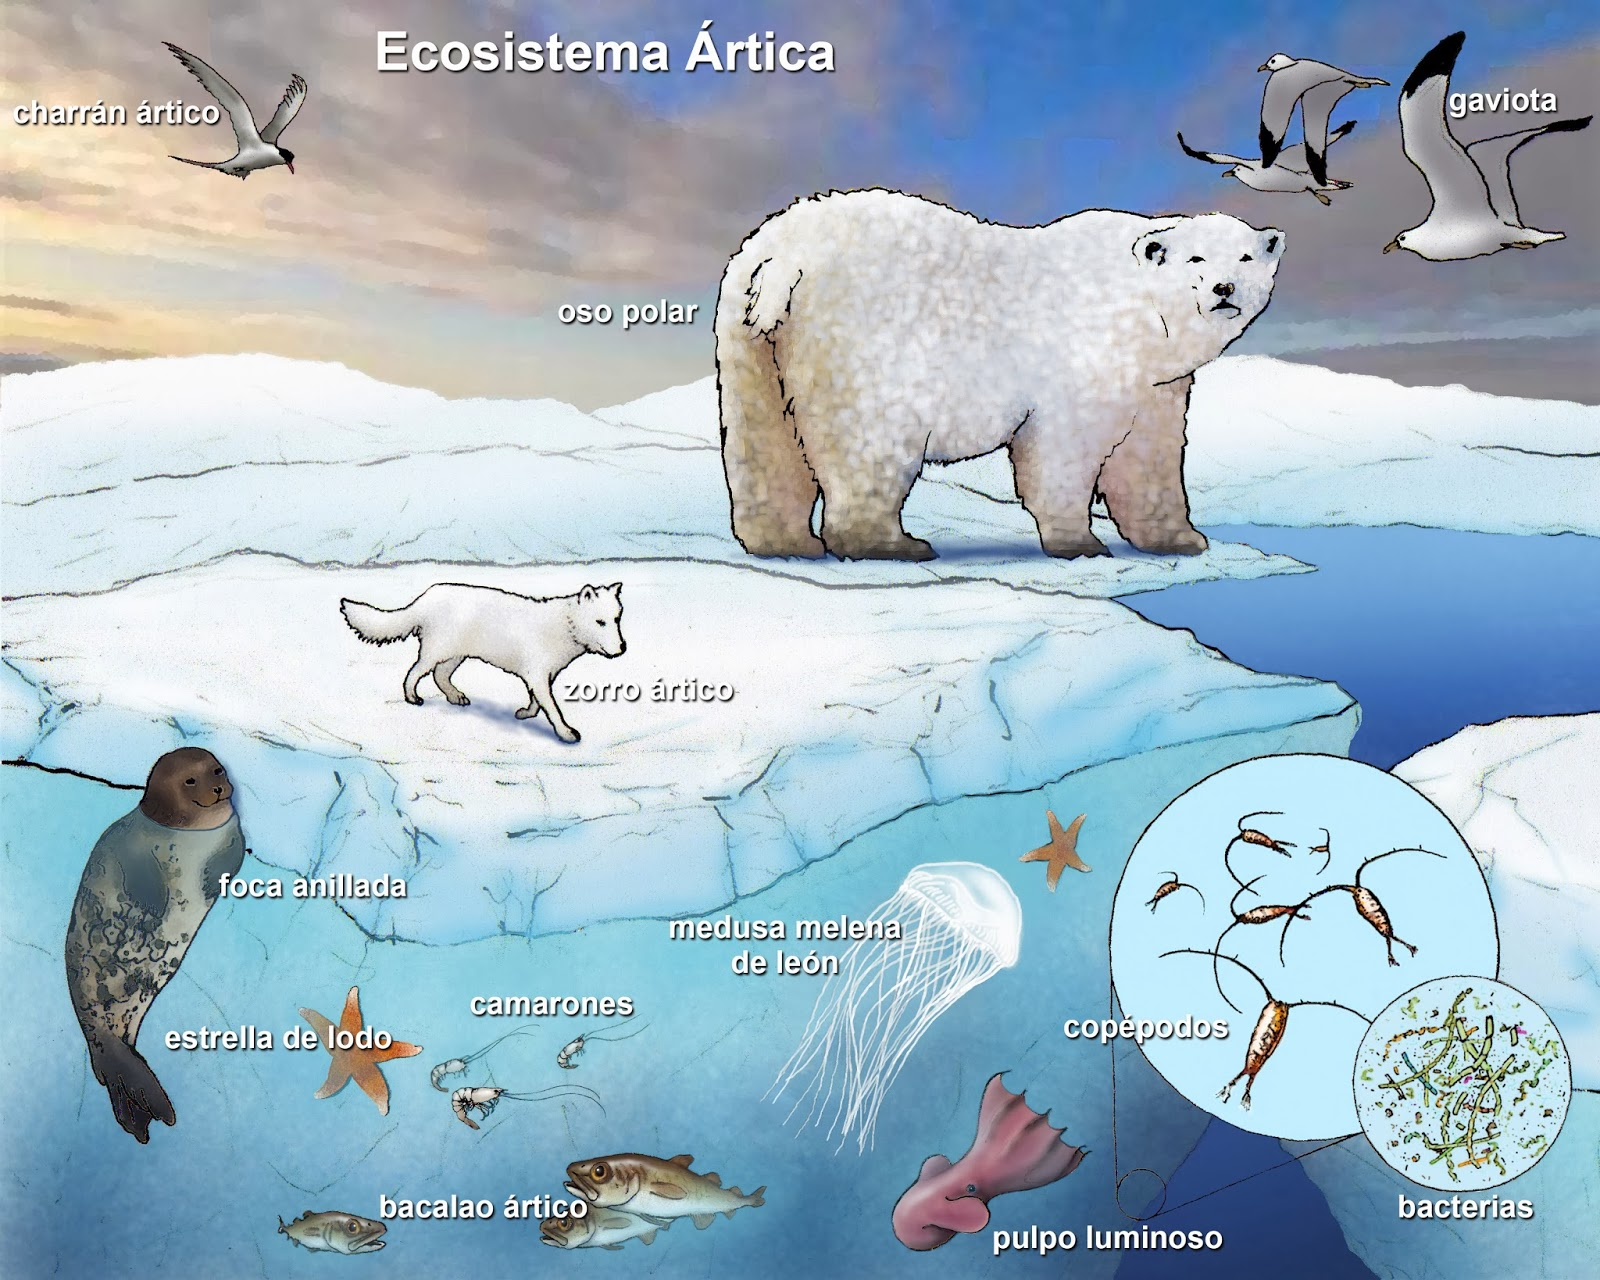 Grade 9 Science: Nov. 22 – Introduction to Ecology